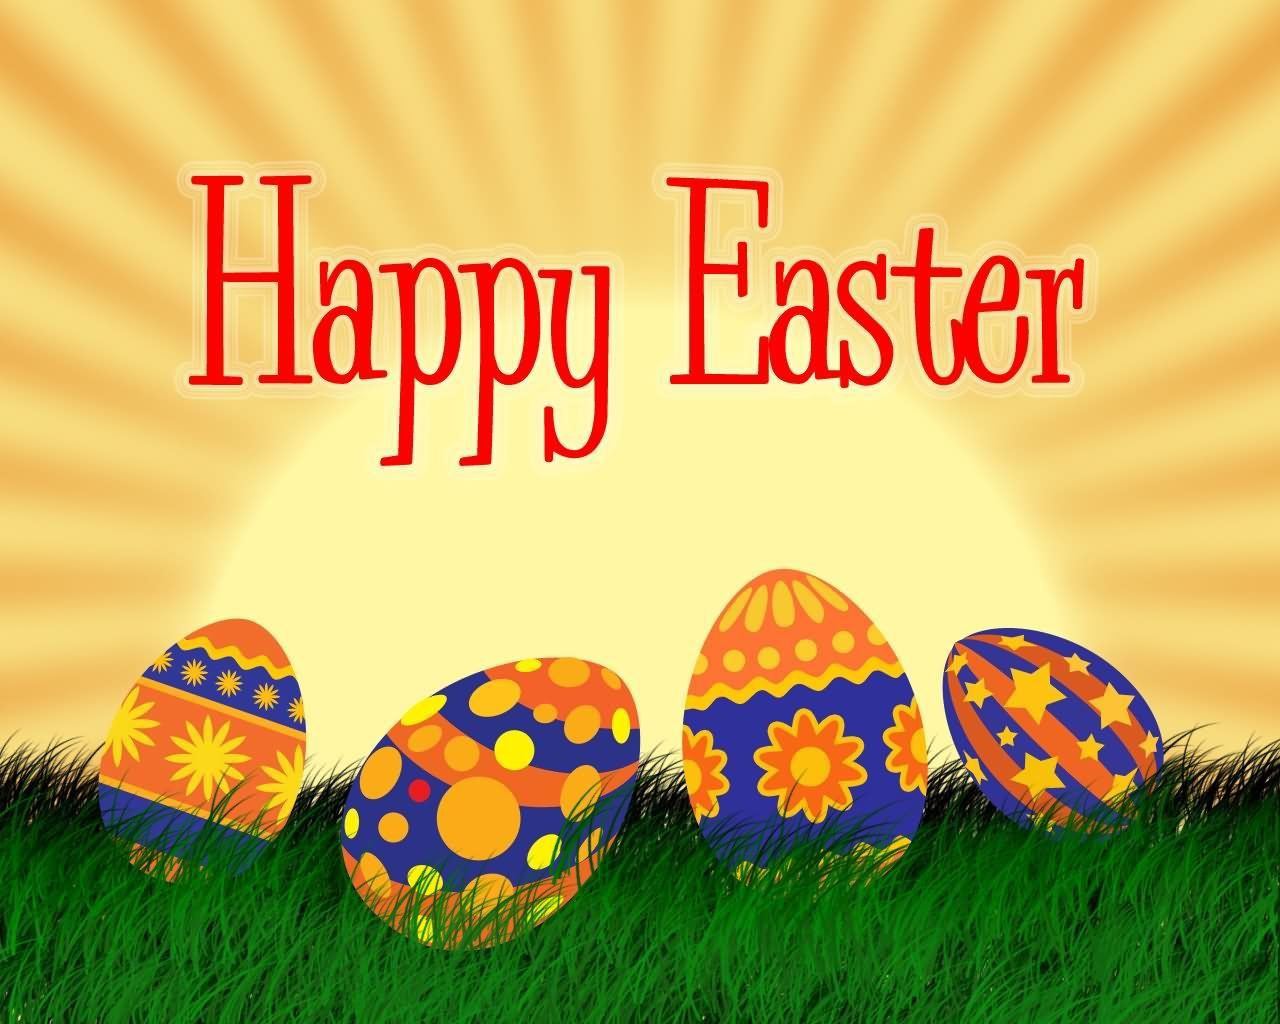 Happy Easter Easter Easter Quotes Easter Images Happy Easter Easter